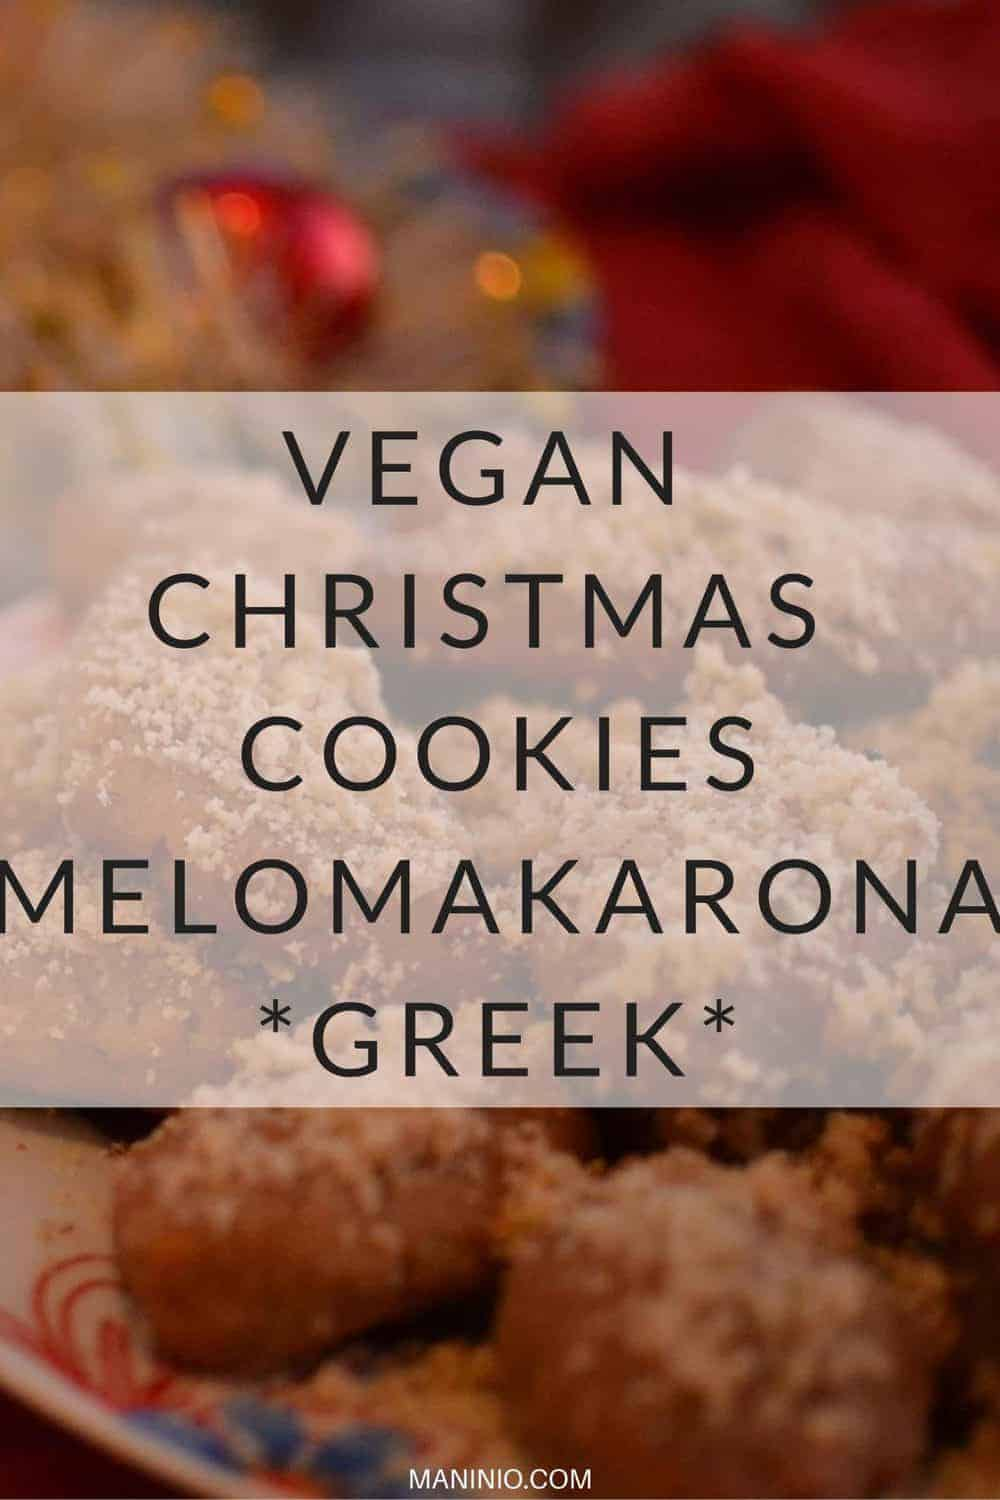 Vegan Christmas Cookies (melomakarona) | greek and low in calories10.maninio.com #christmascookies #greekcookies